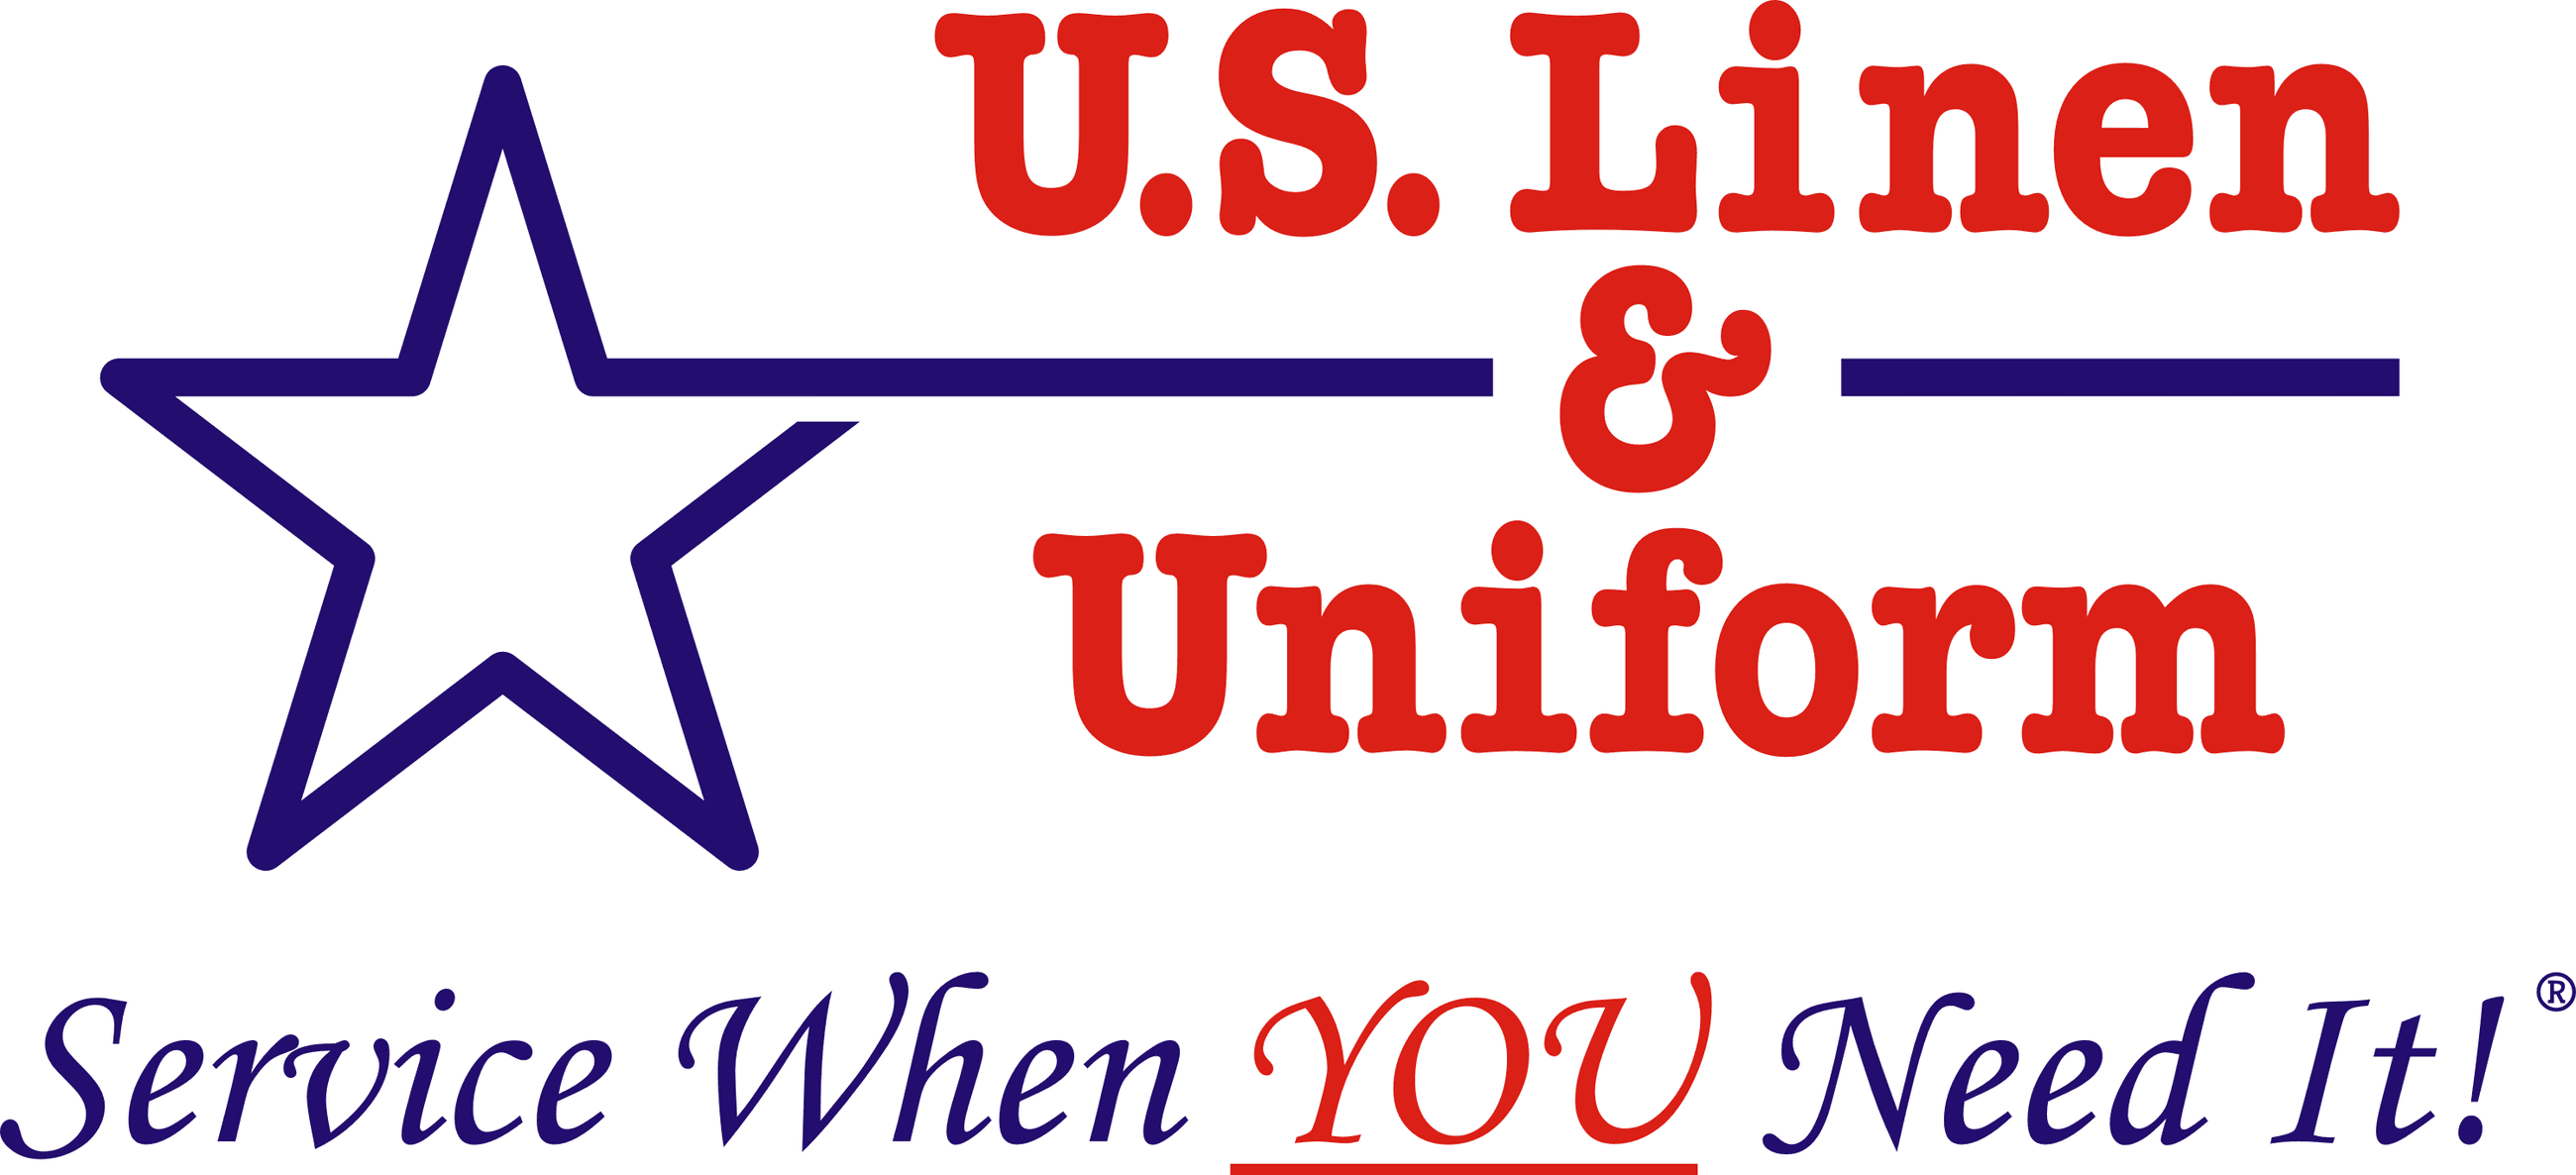 U.S. Lines and Uniform Service when you need it